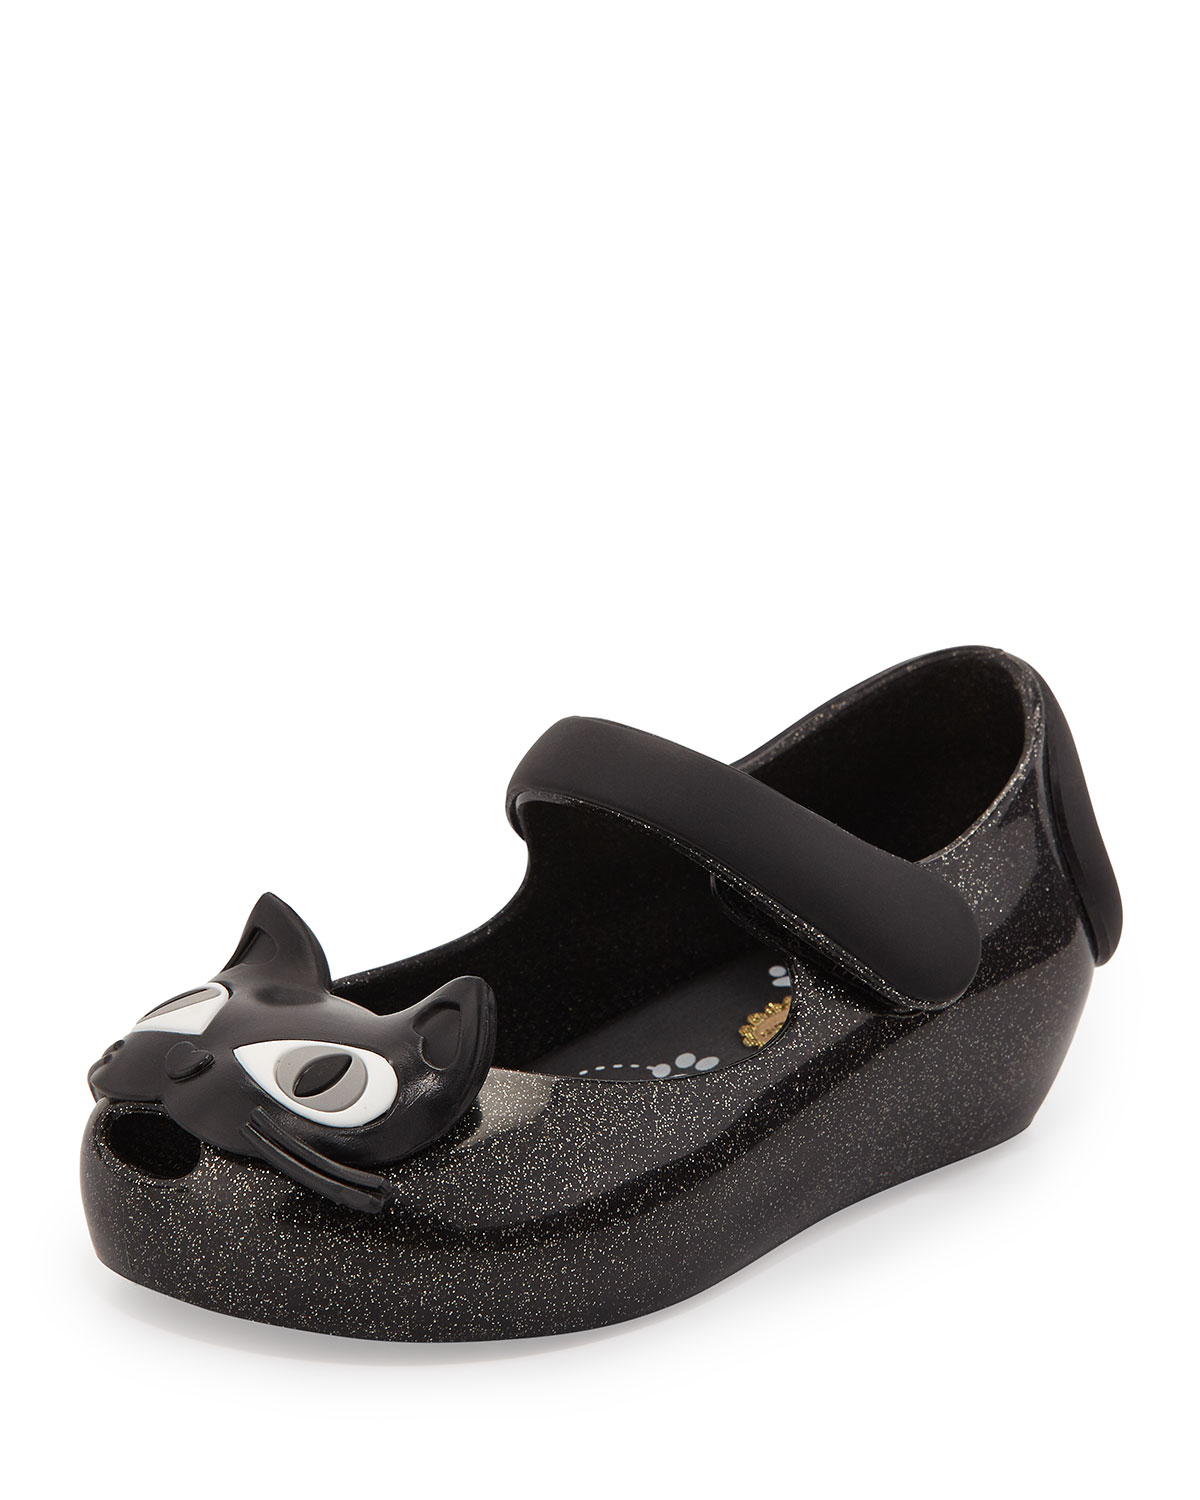 Mini Ultragirl II Cat-Face Jelly Mary Jane, Sizes 5T-10T, Size: 10, Black - Melissa Shoes